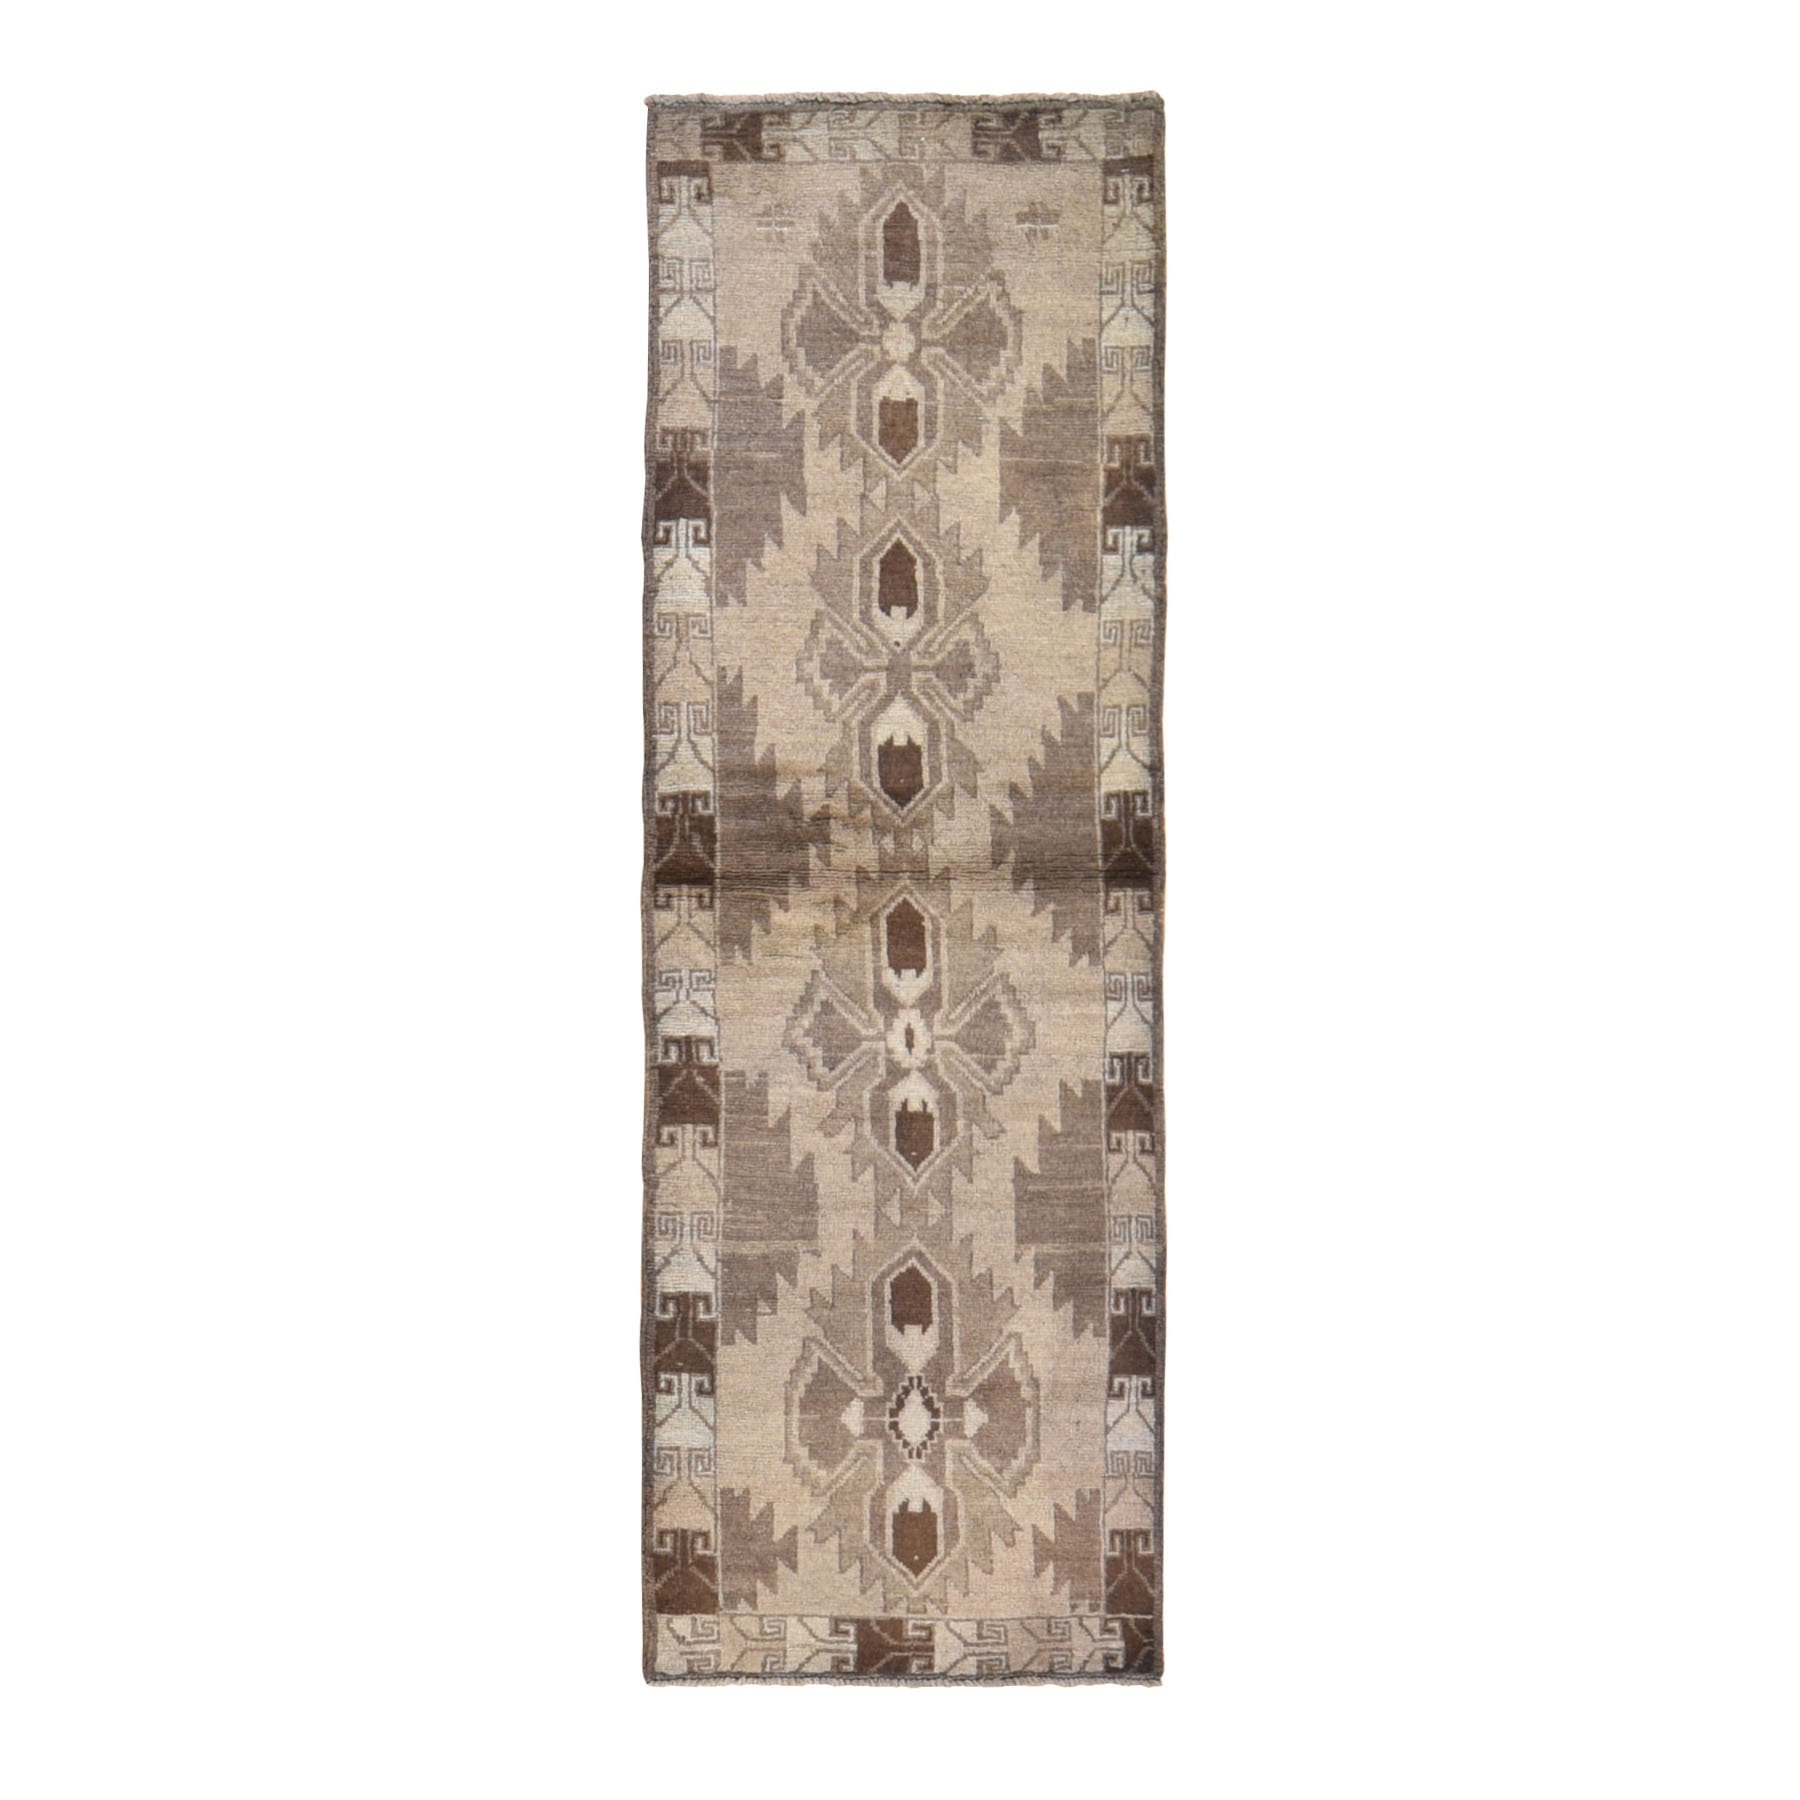 Nomadic And Village Collection Hand Knotted Brown Rug No: 0198514